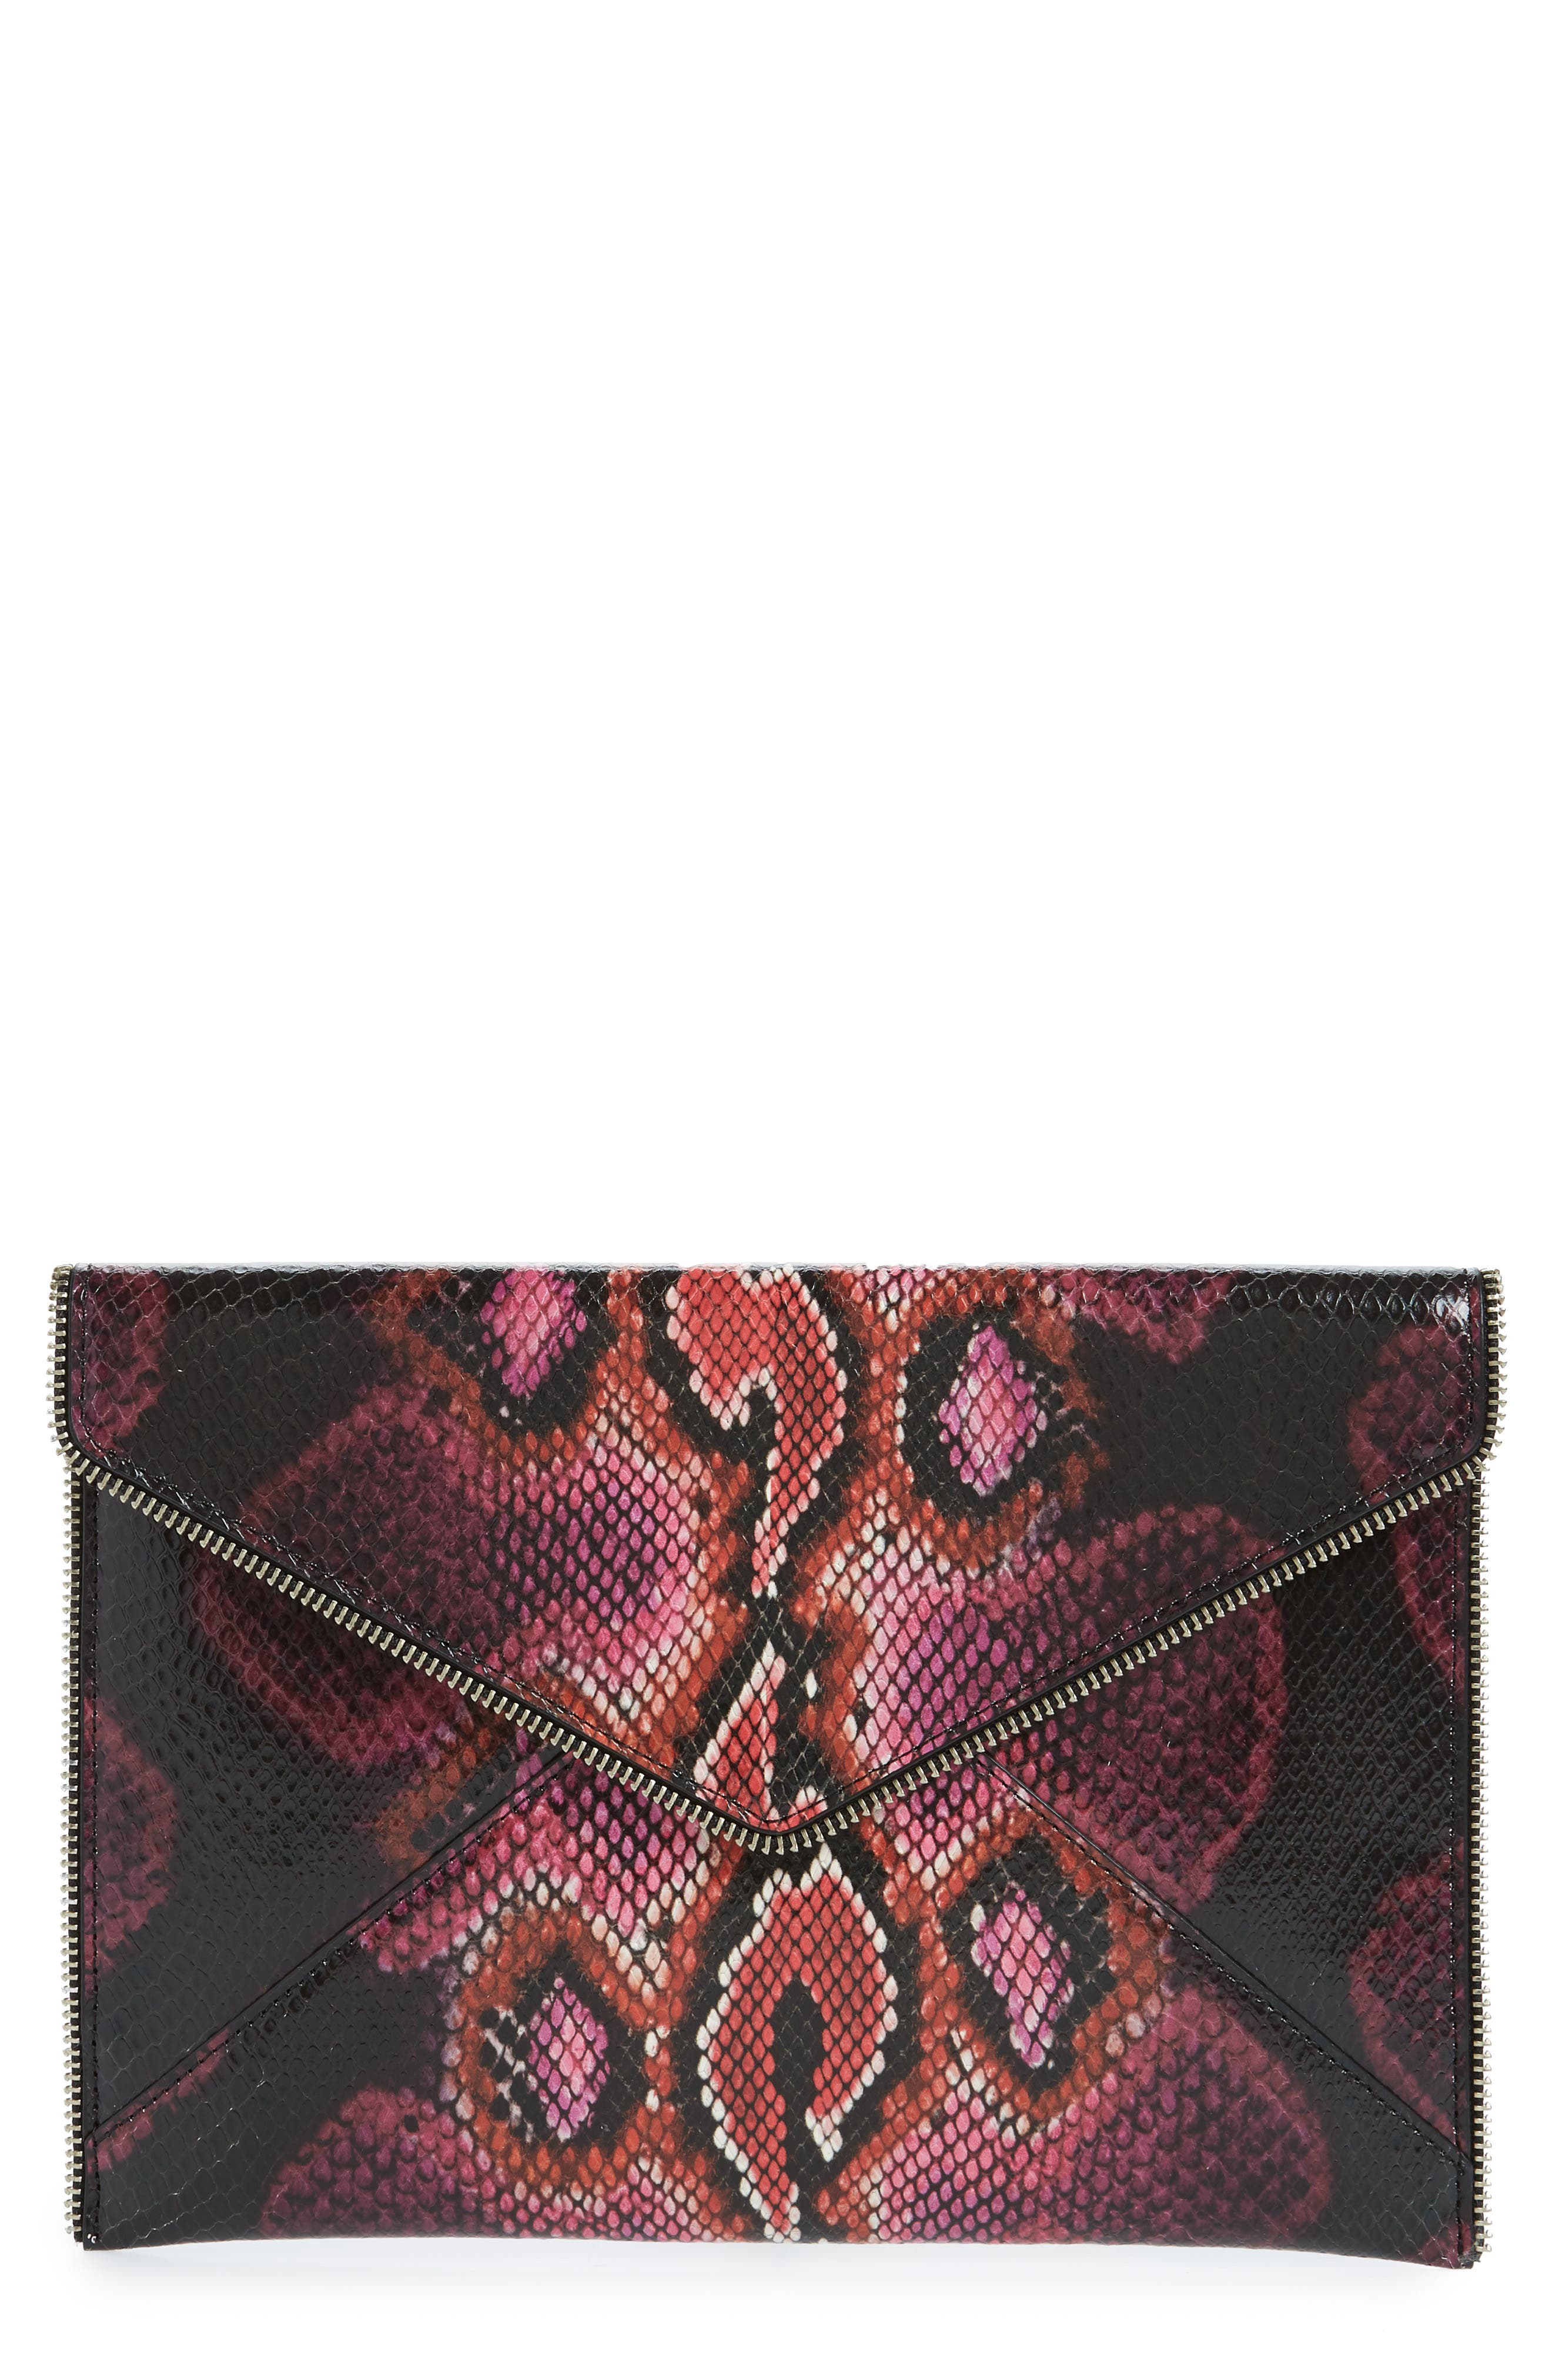 REBECCA MINKOFF, Leo Snake Embossed Leather Clutch, Main thumbnail 1, color, 650